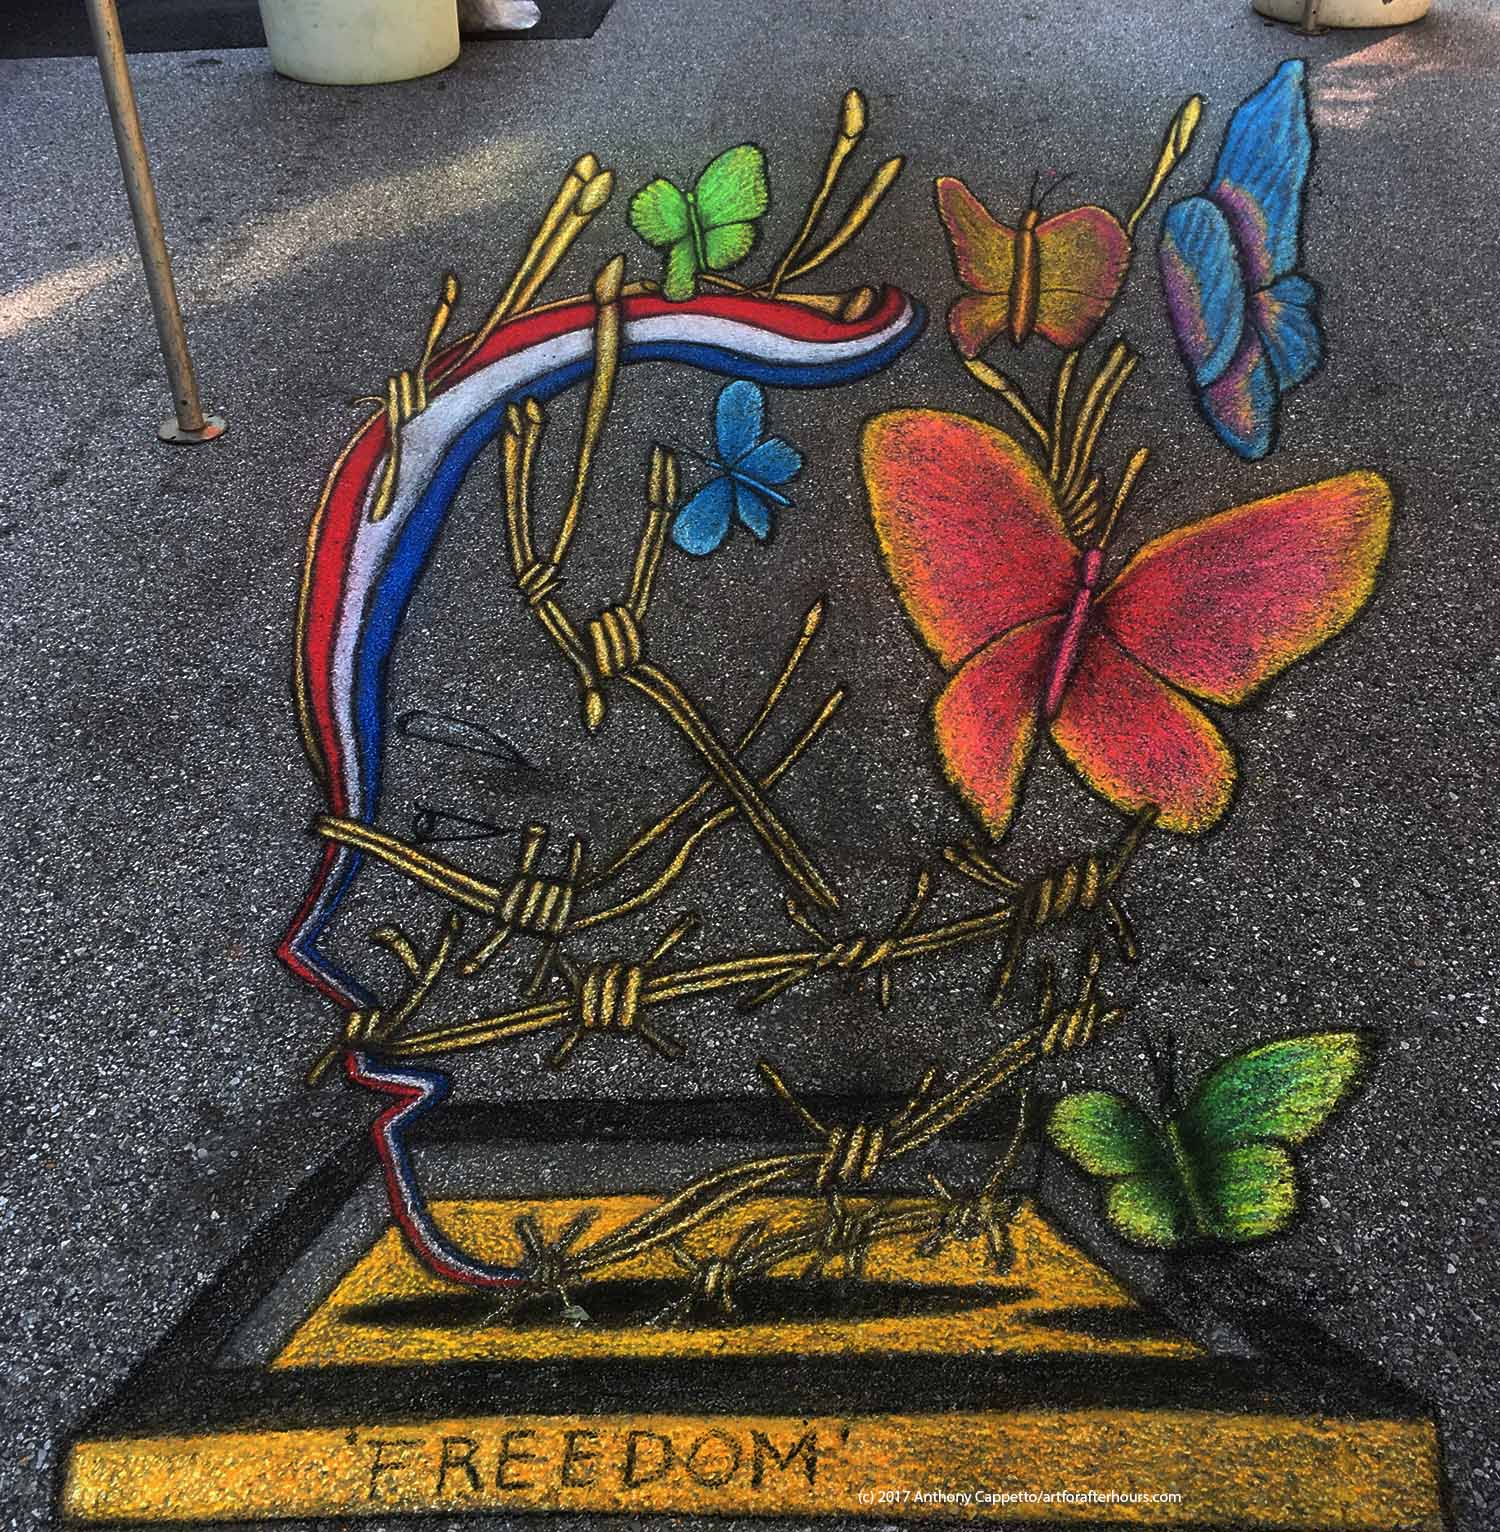 'Freedom': Baltimore, Maryland, USA